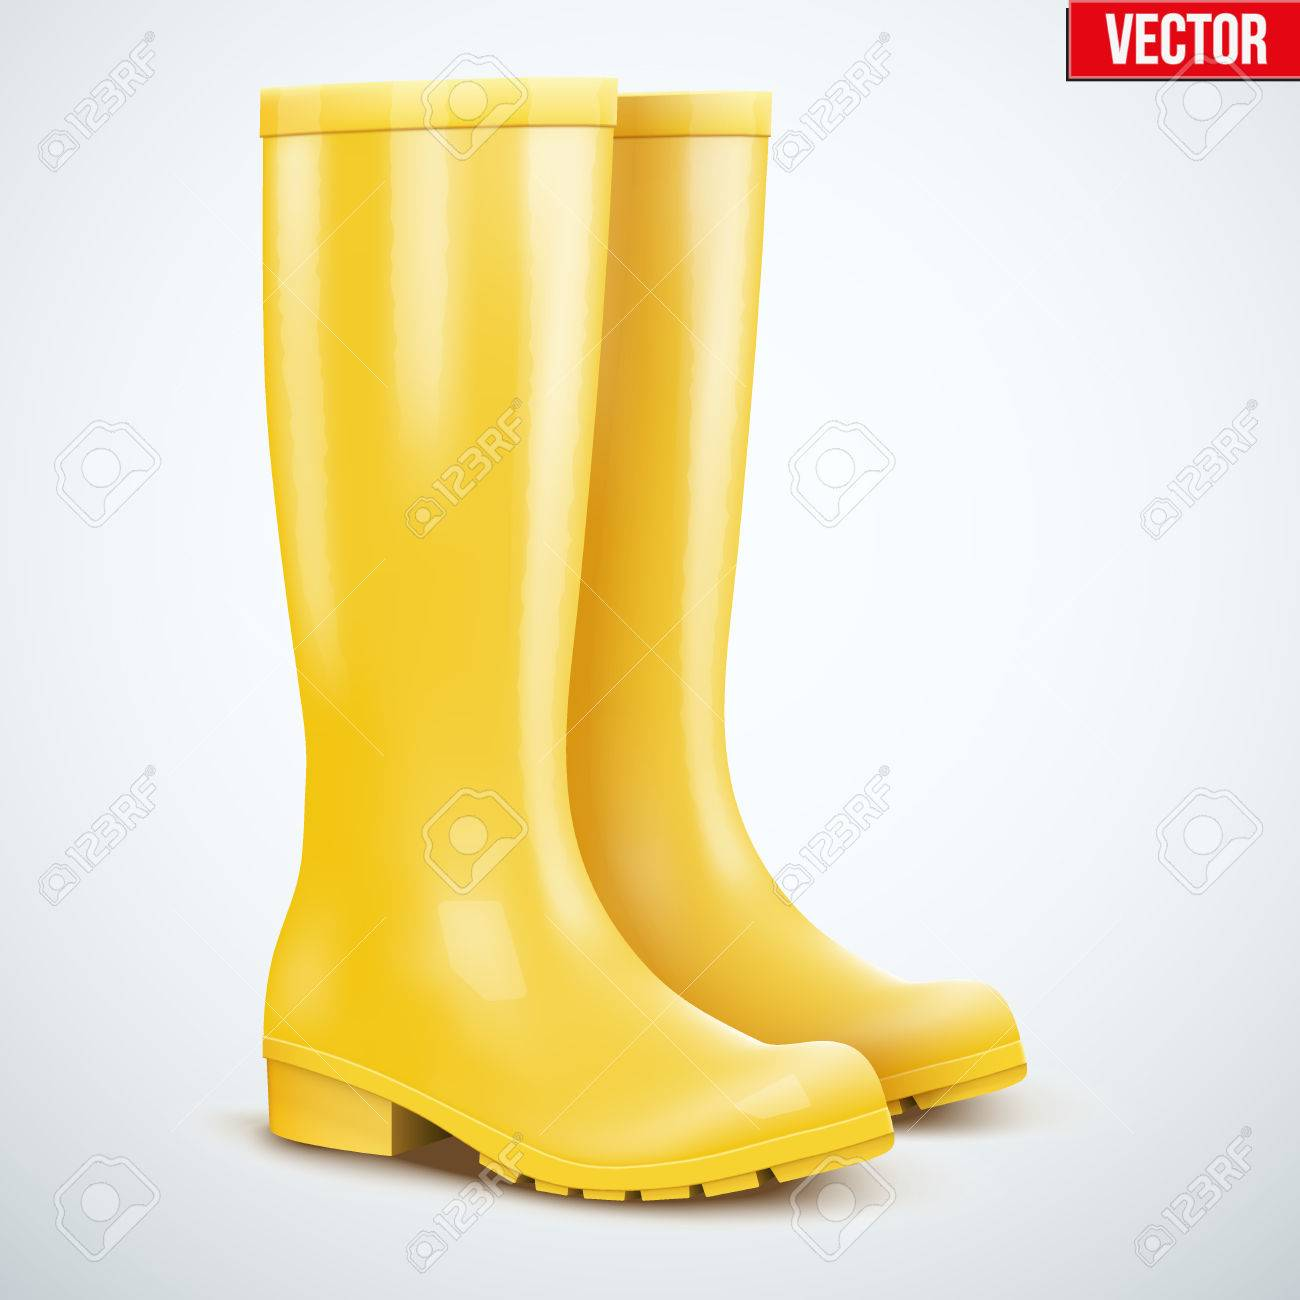 b8fd48d32c Pair of yellow rubber rain boots. Symbol of autumn and weather. Vector  illustration Isolated